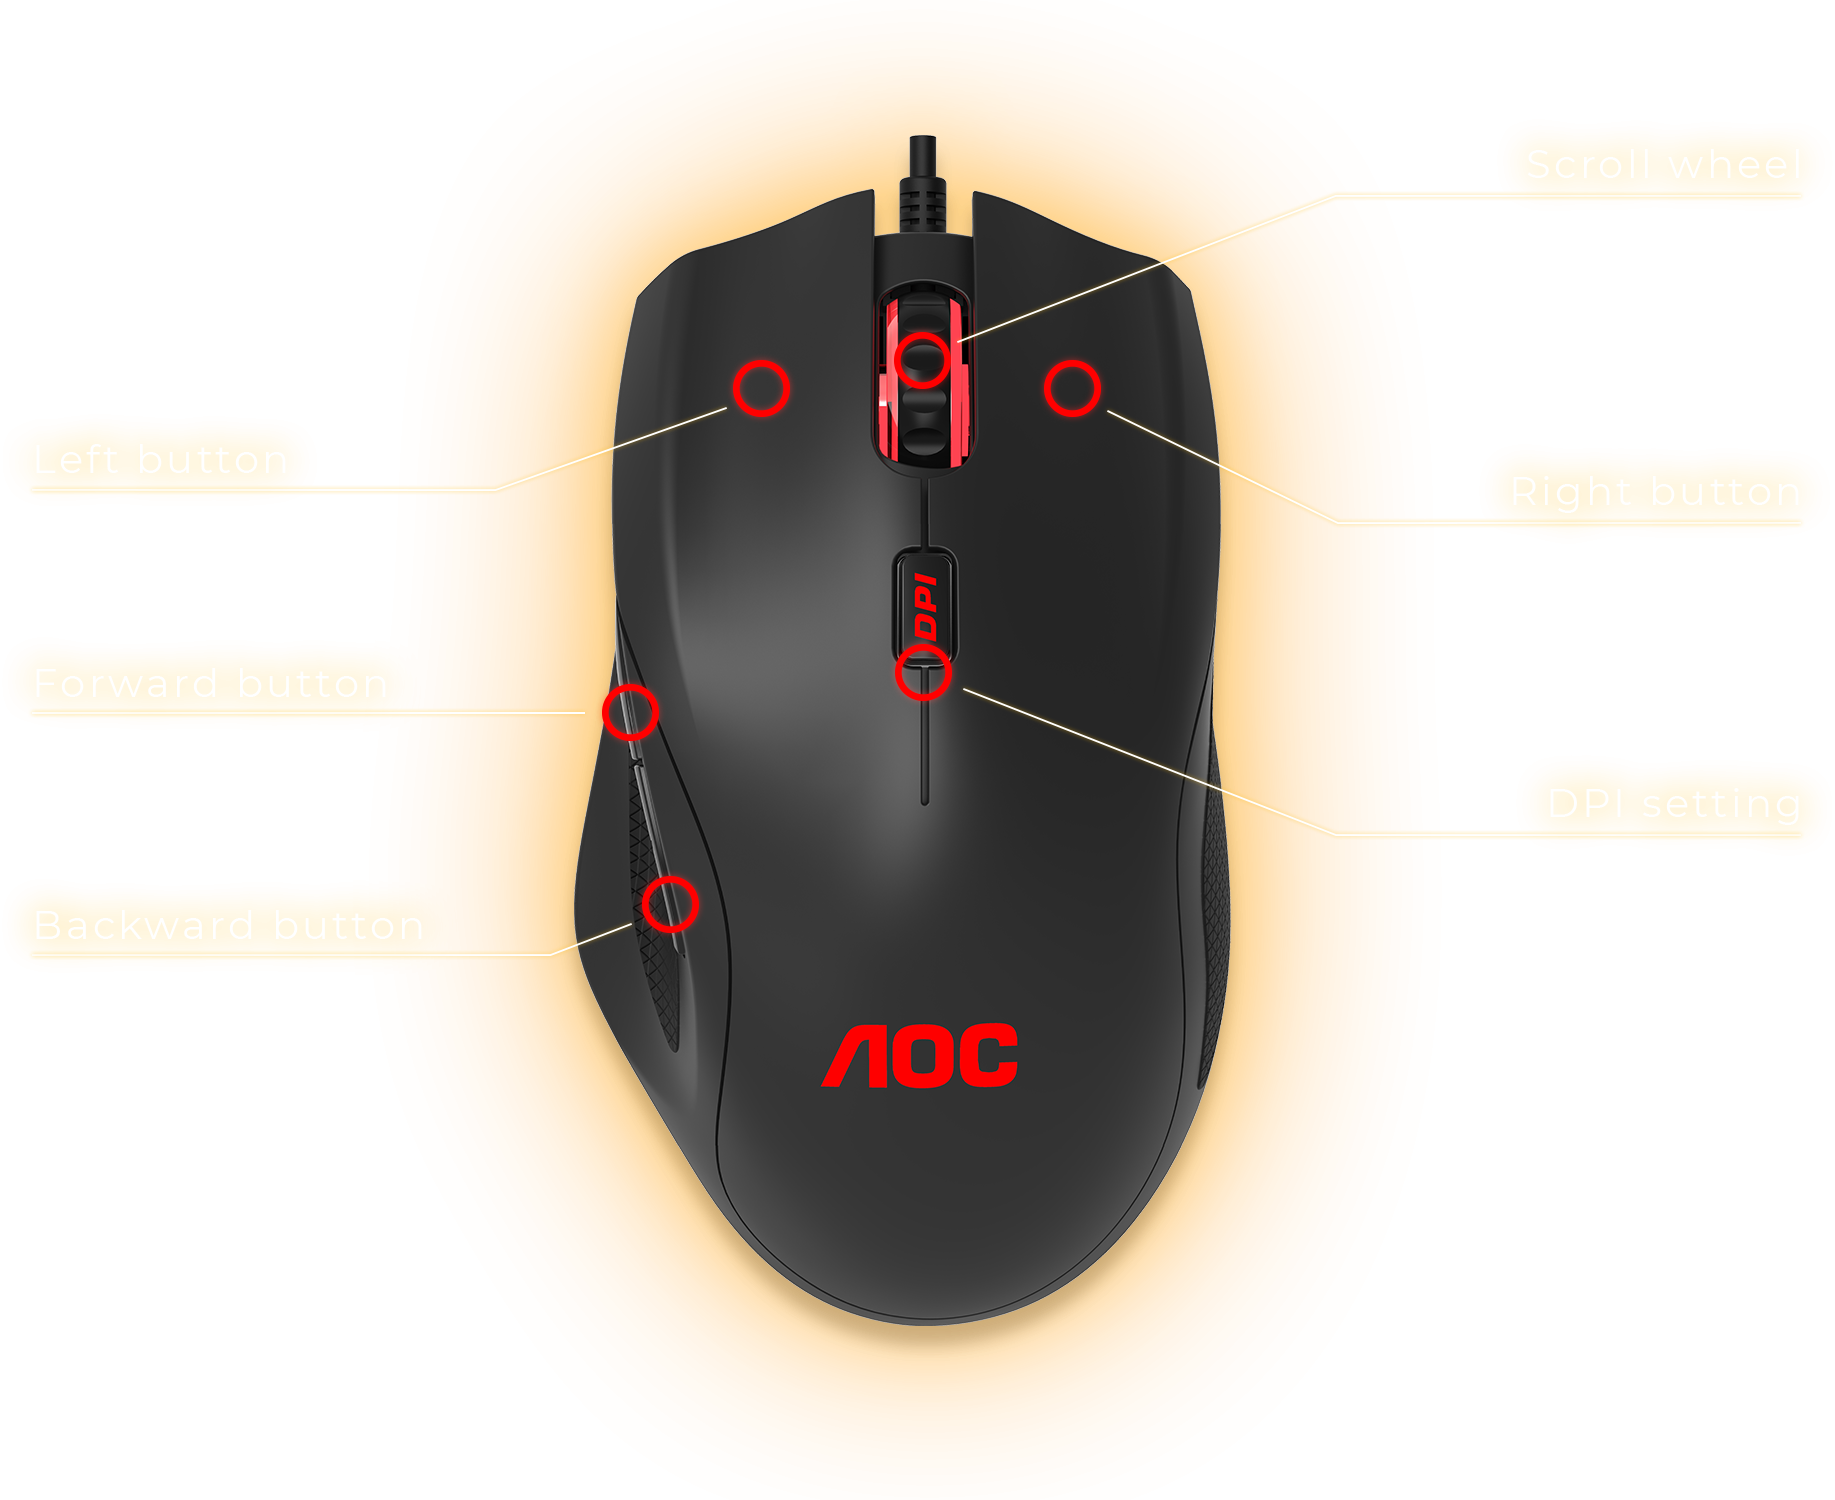 AOCG_GM200_FV_FW_BUTTON_FRONT.png